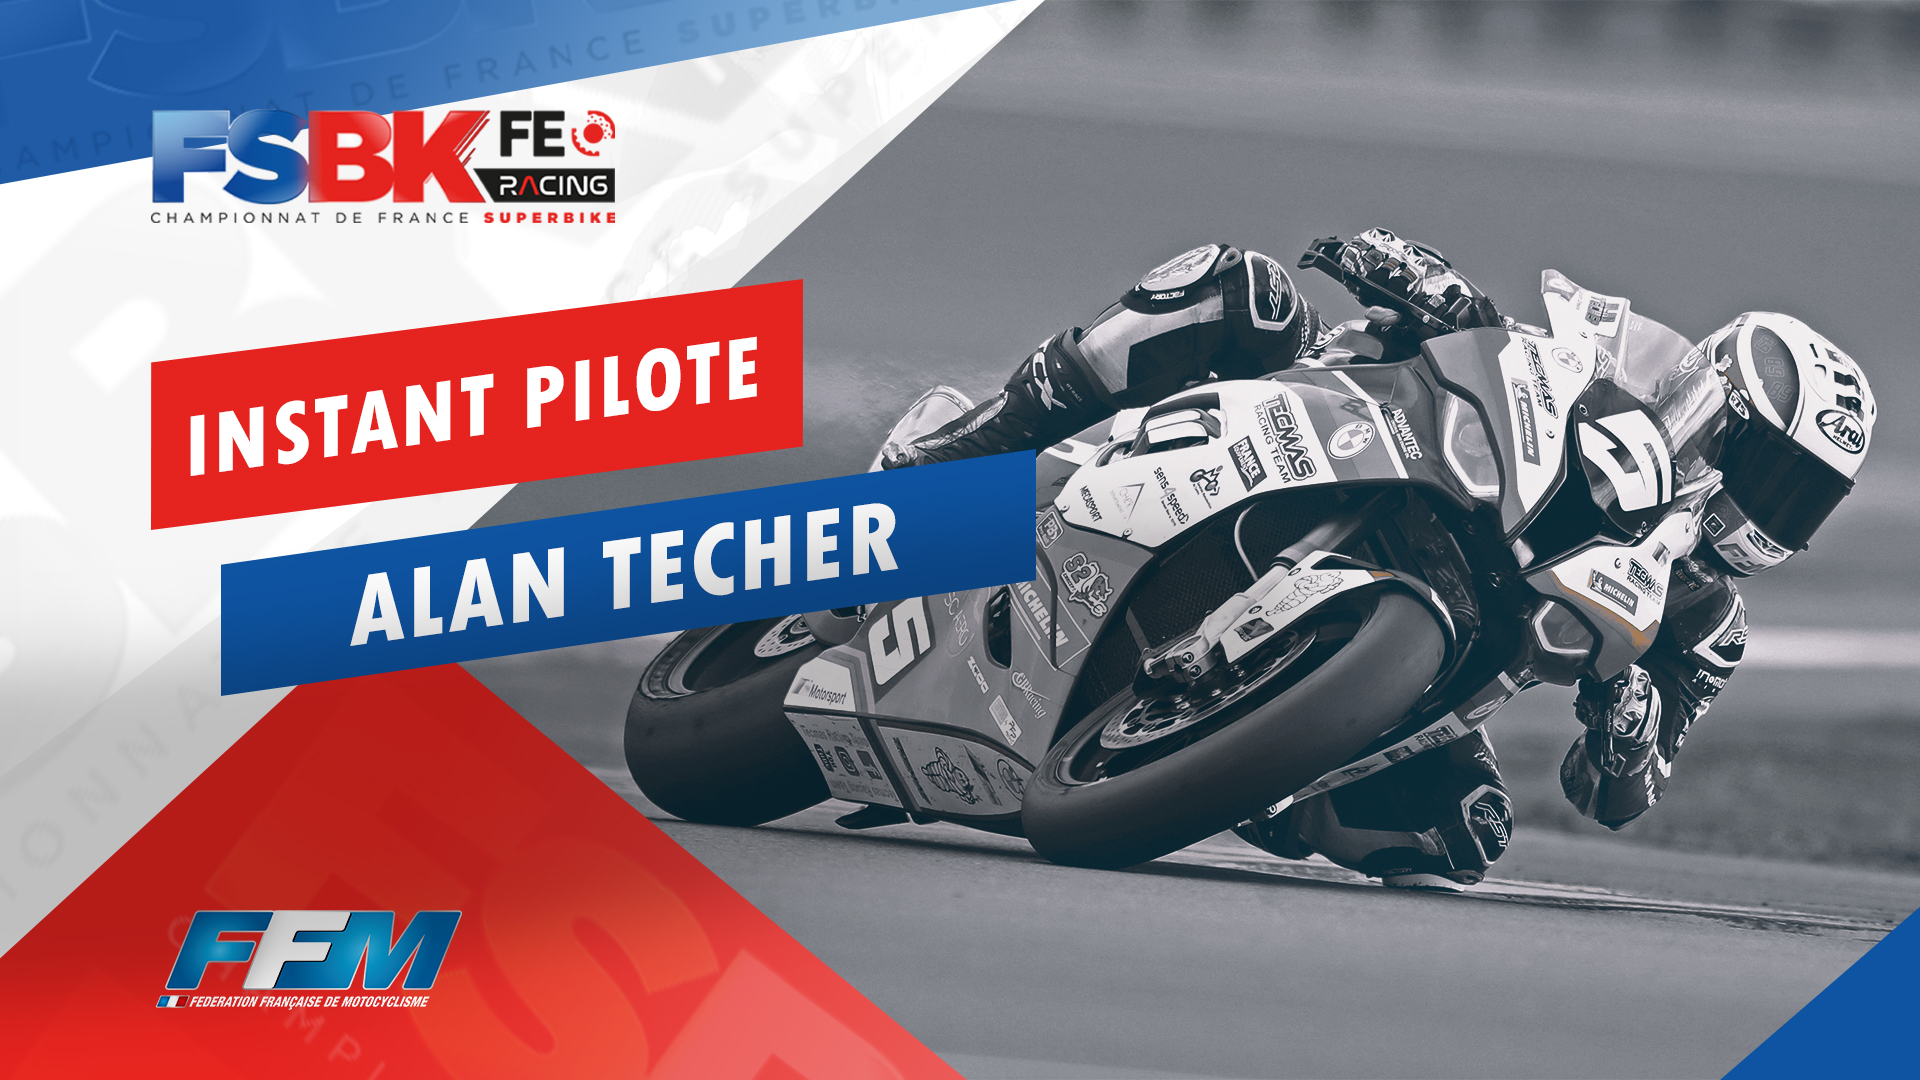 // L' INSTANT PILOTE : ALAN TECHER //